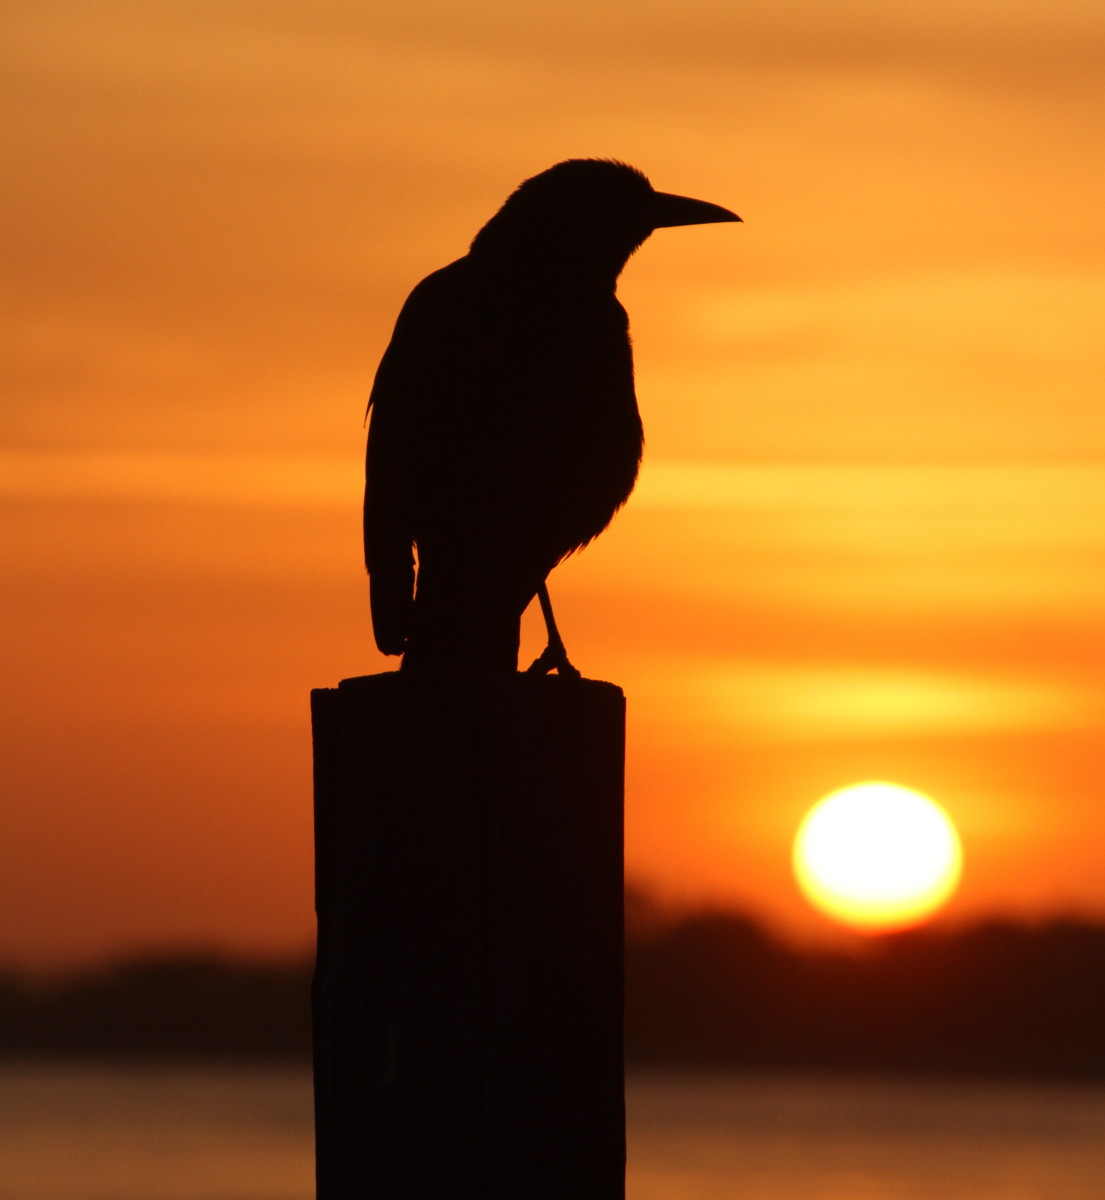 13 Bible Verses About Birds with Explanations and Other Religions